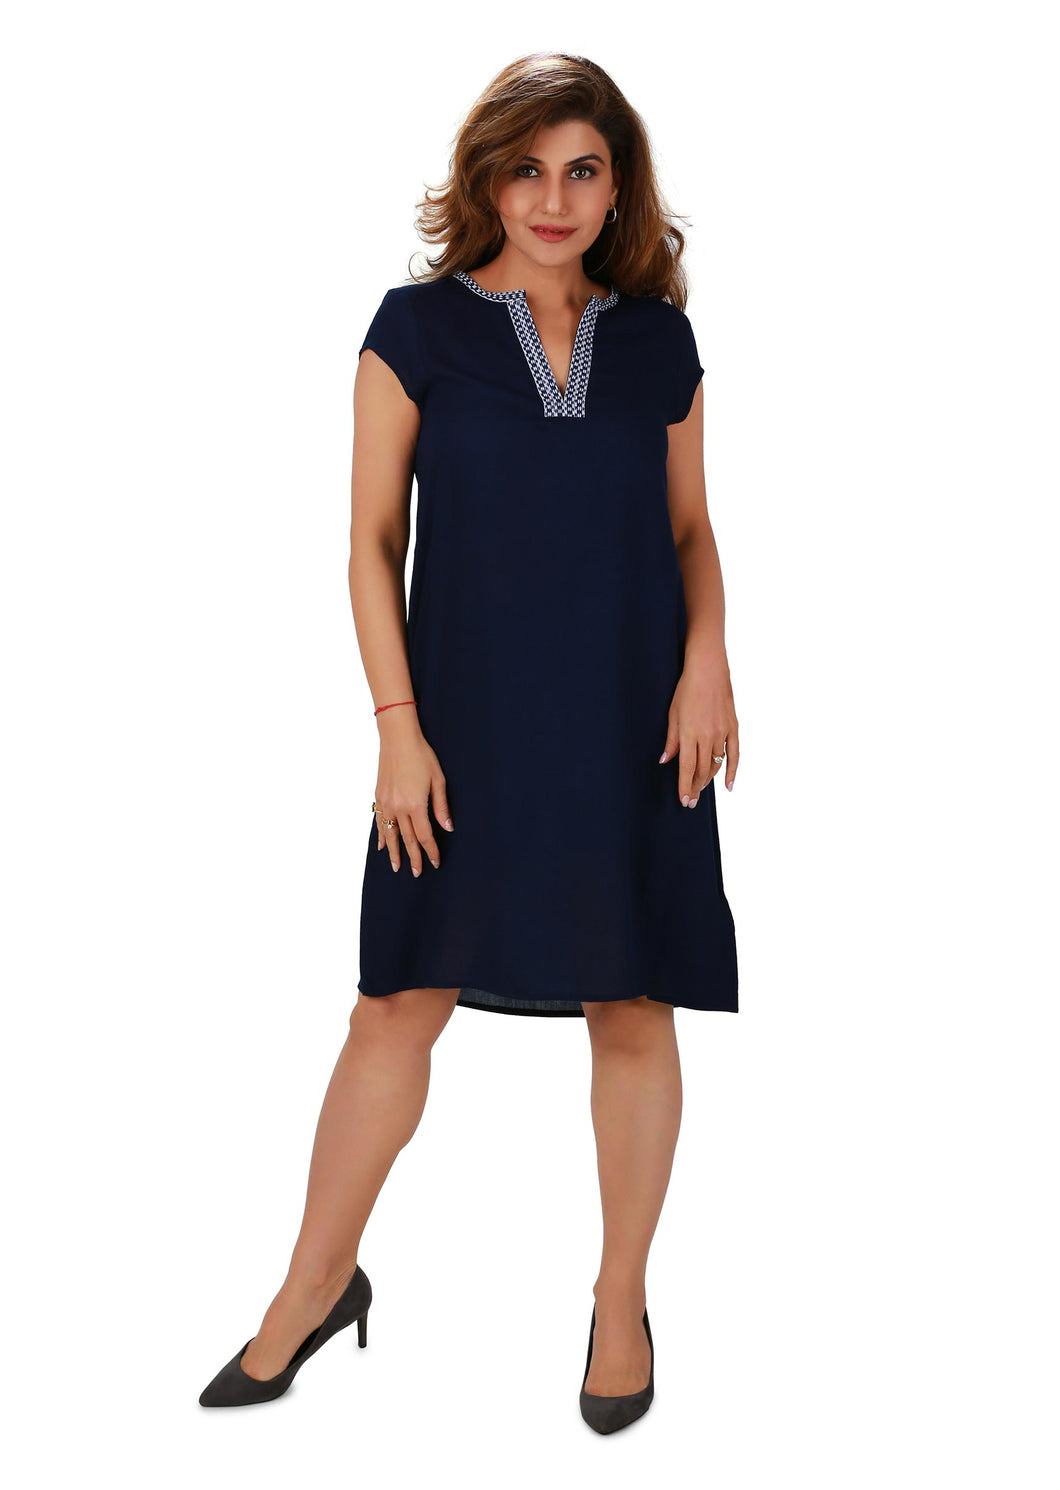 Portrait Neckline Shift Dress